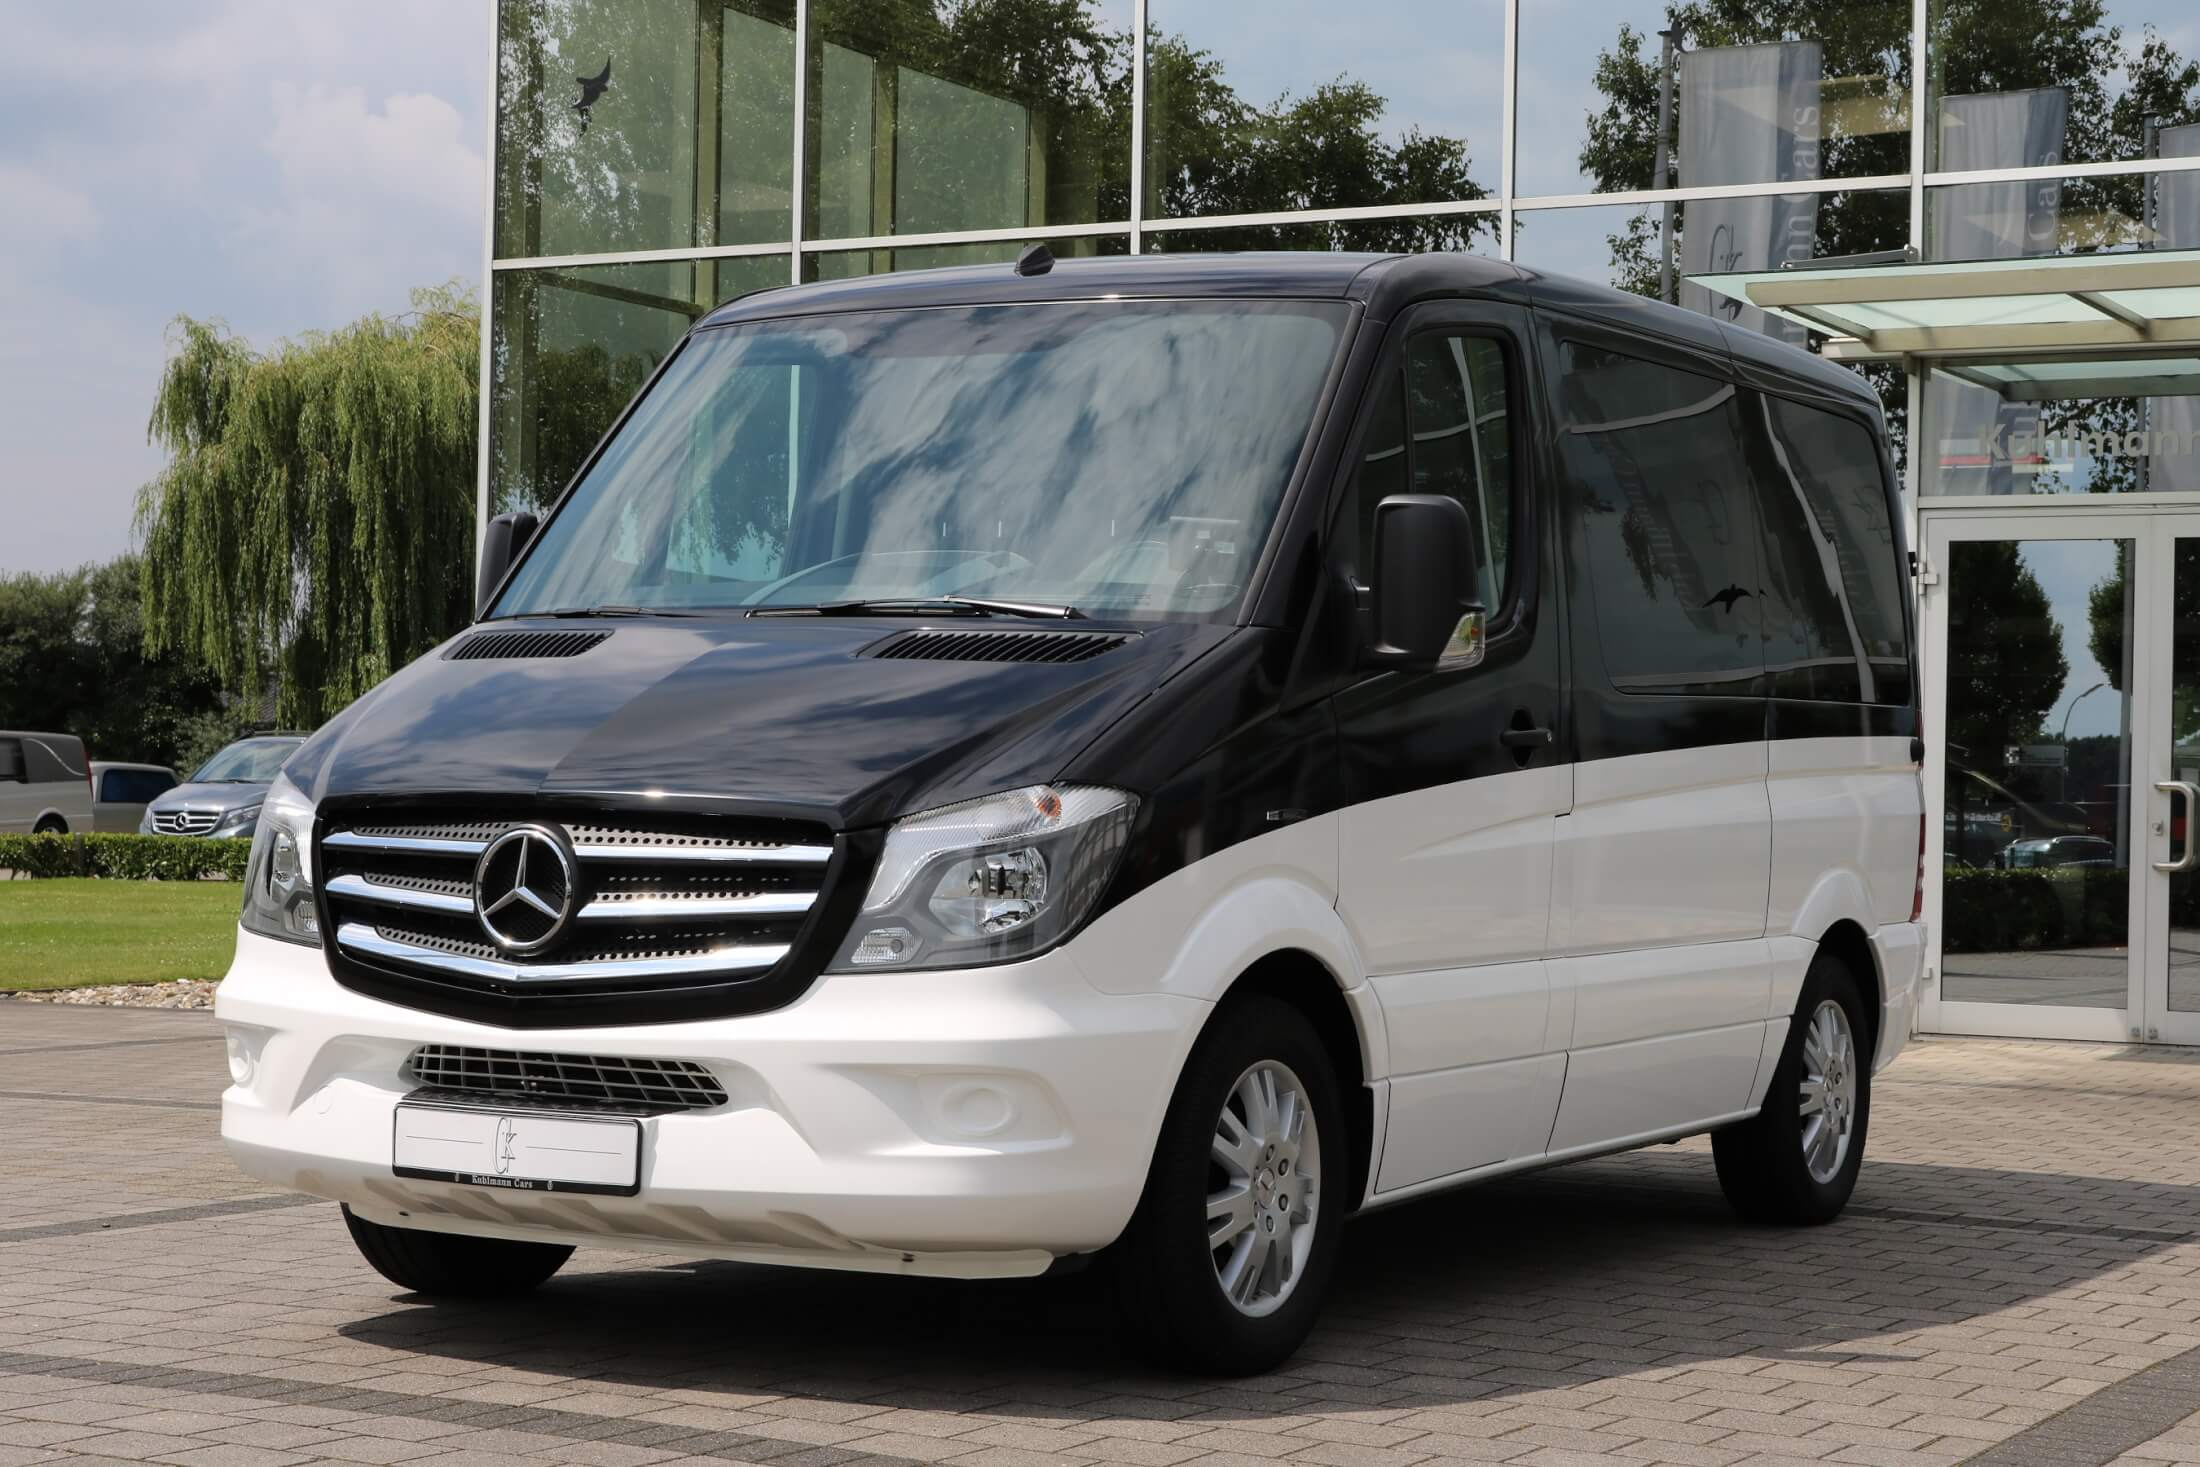 sprinter mercedes img matte shop benz vehicle black customization minibus